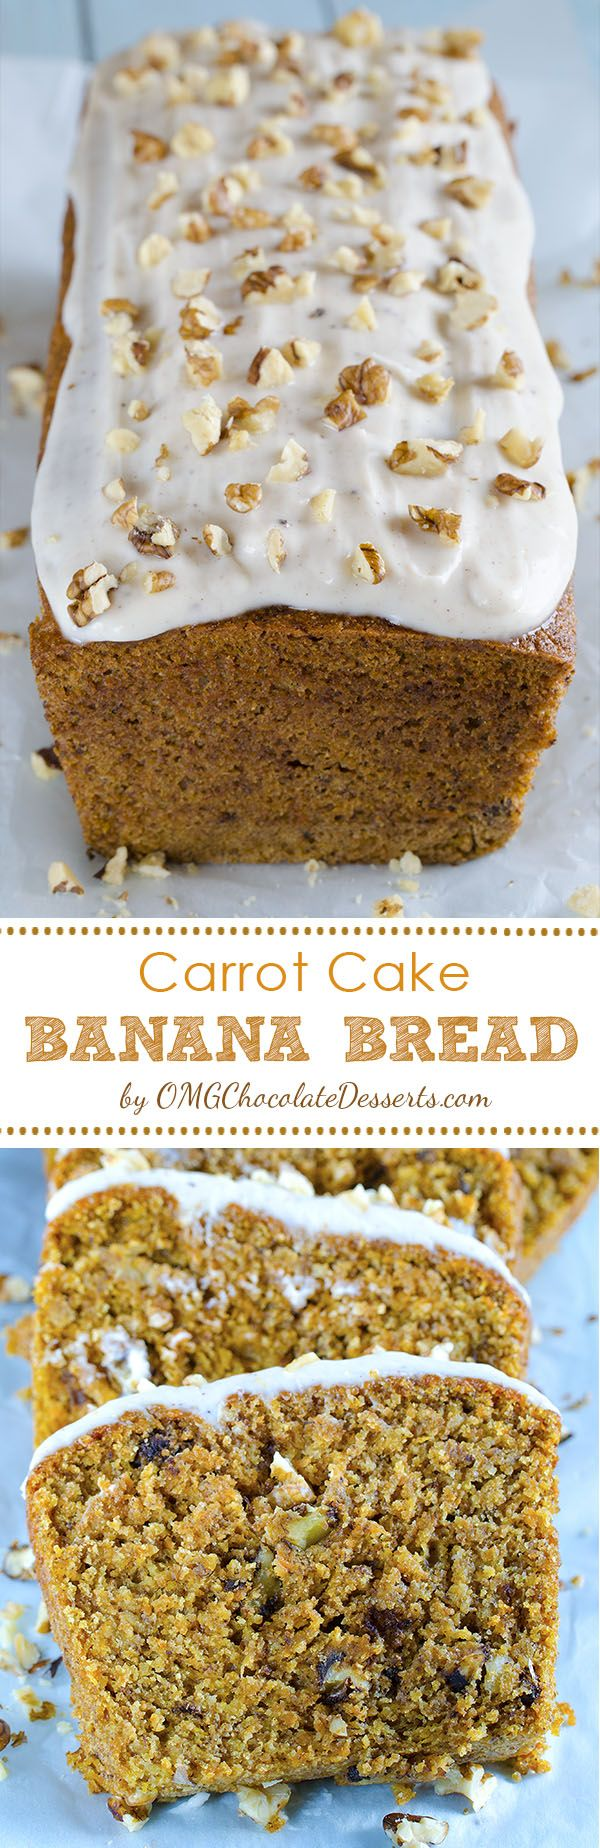 """This Carrot Cake Banana Bread is melt-in-your-mouth-moist and flavorful and you couldn't even tell there were carrots in it. Whole wheat bread with banana, carrots and nuts is a real energetic bomb and a great excuse to have a """"cake"""" of a breakfast"""